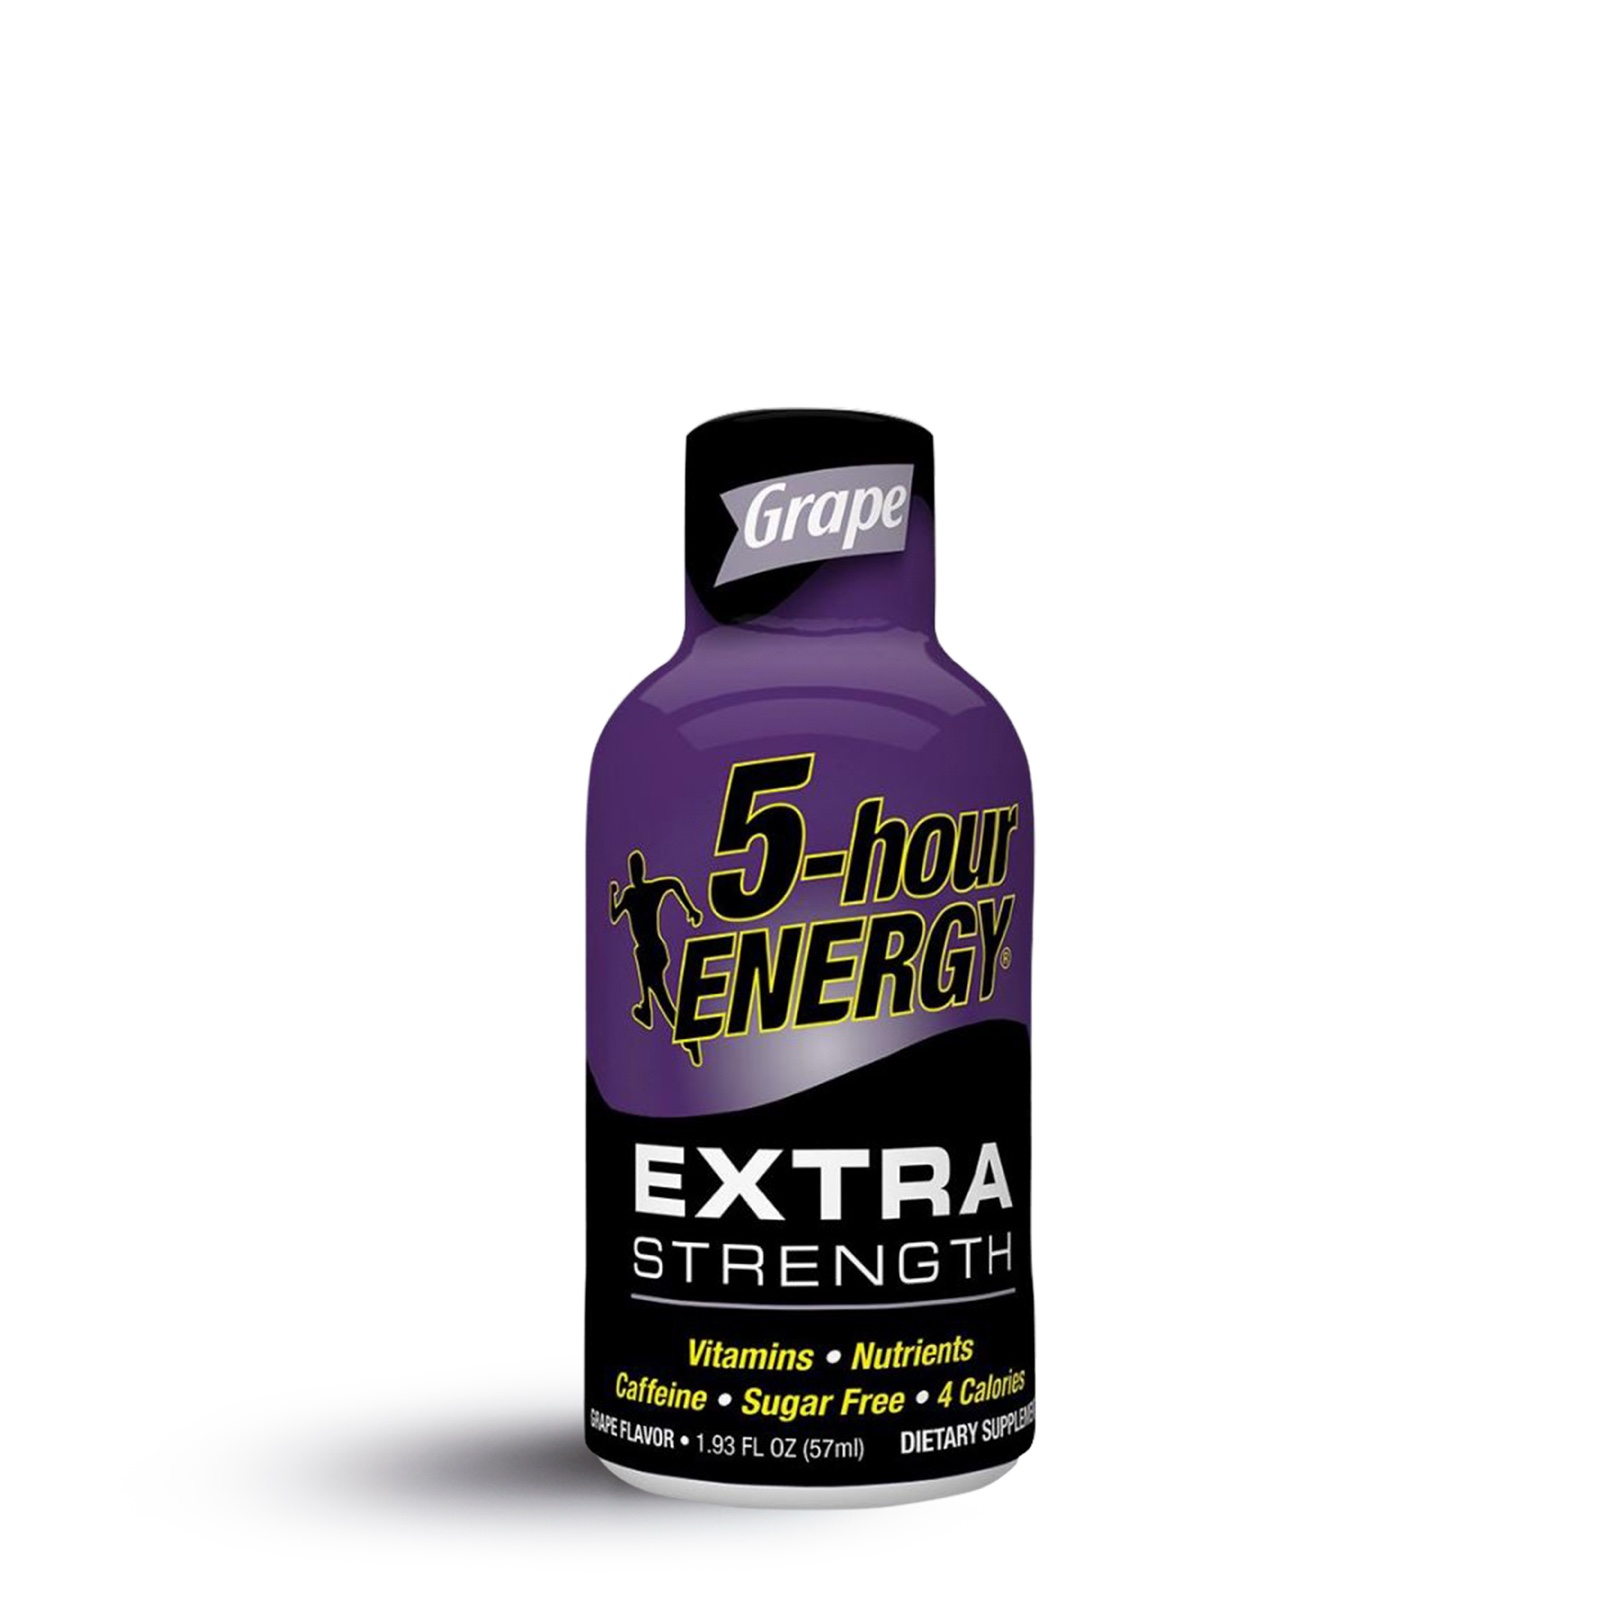 A single 5-hour extra strength energy shot in grape flavor